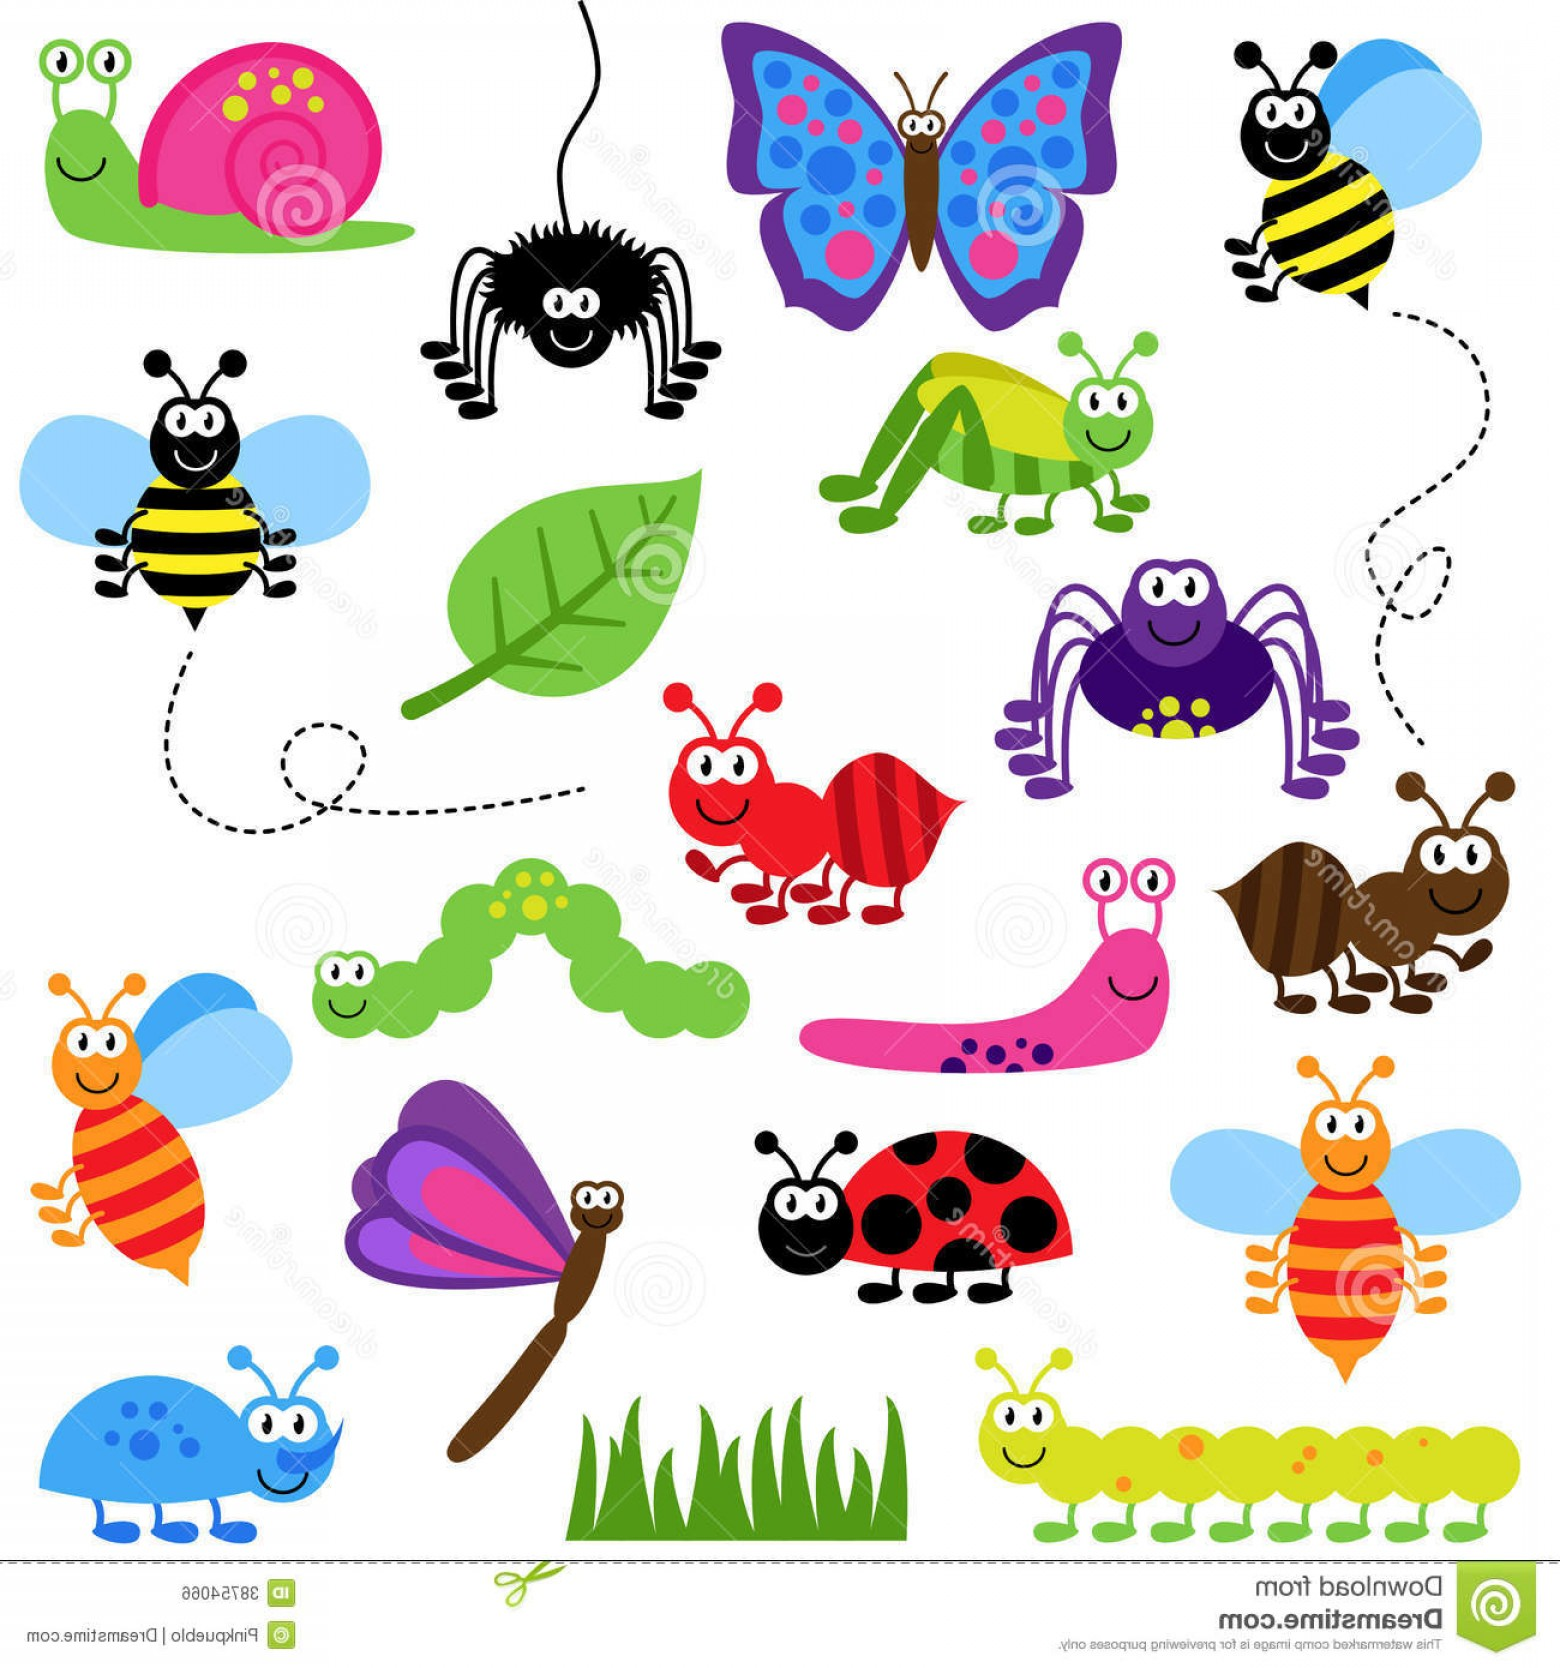 Bug Vector Art: Royalty Free Stock Photos Cute Cartoon Insects Bugs Vector Illustration Icon Image